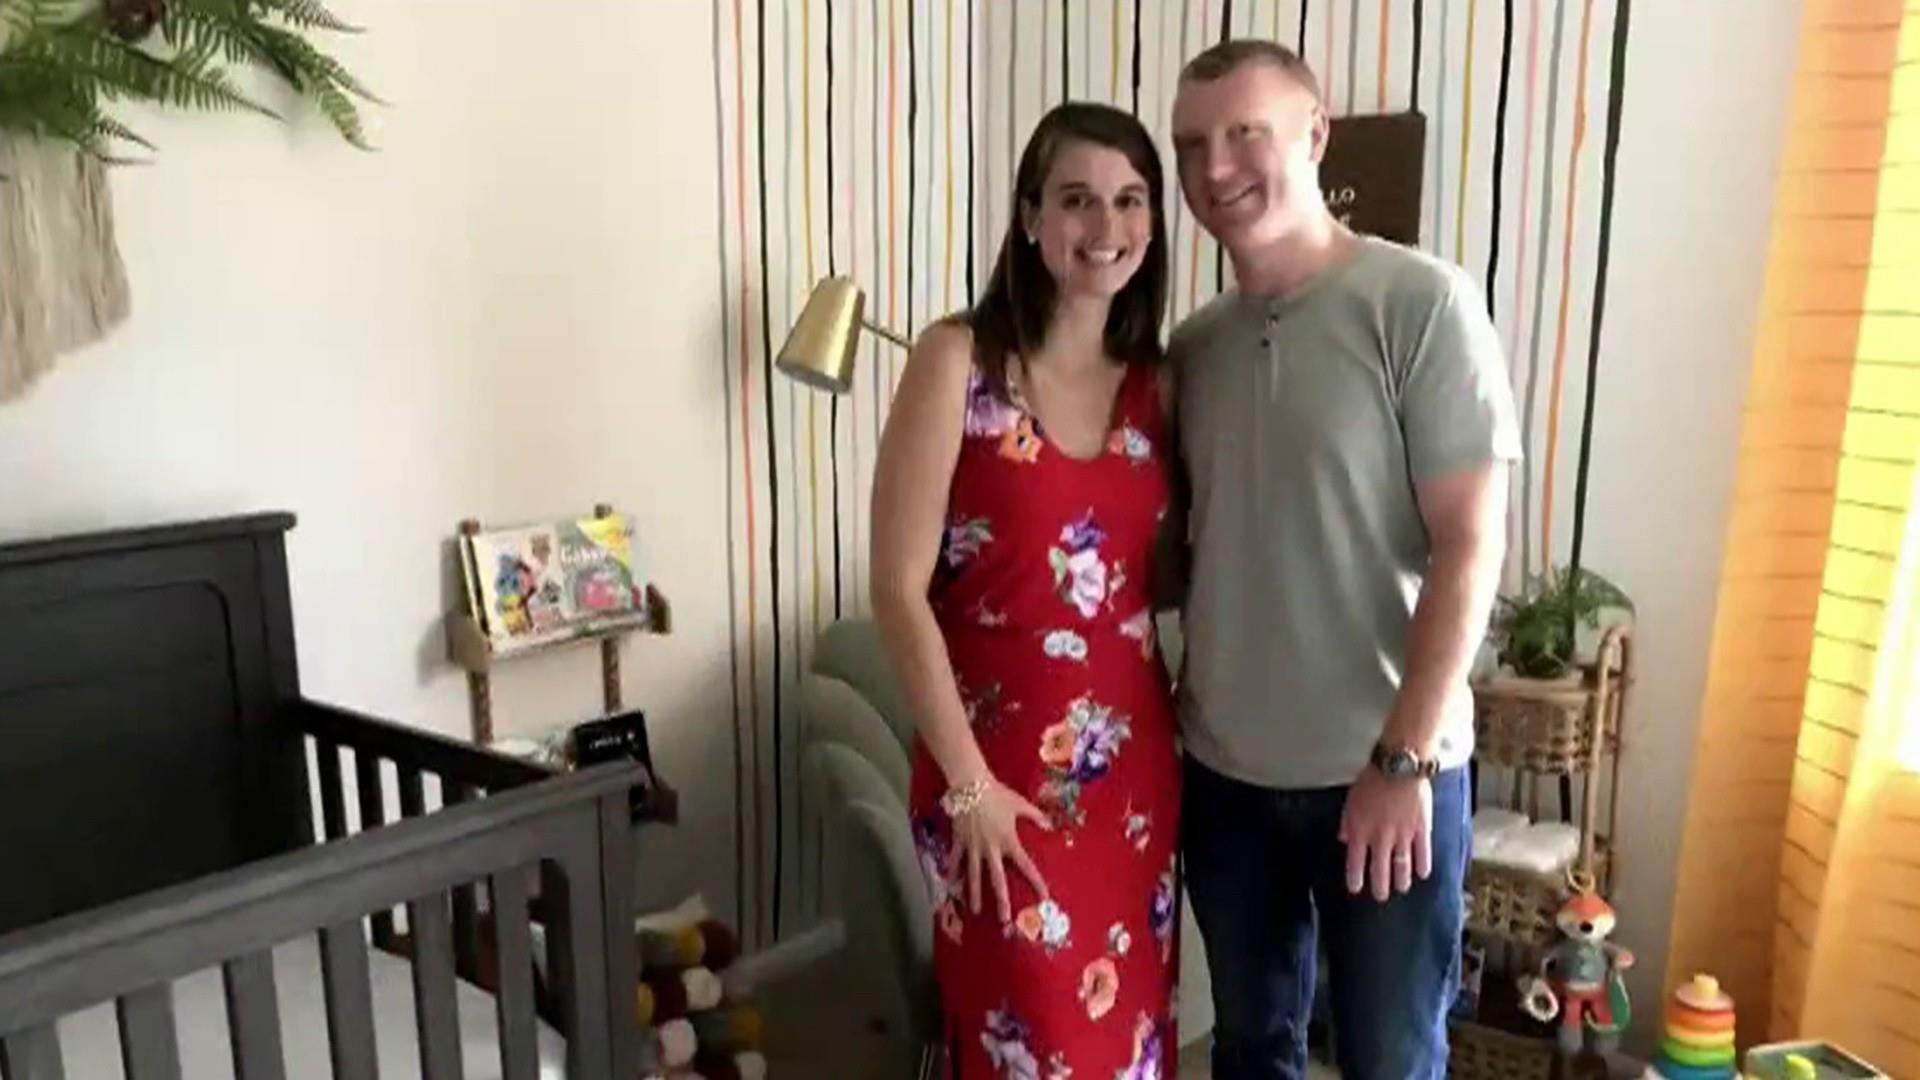 Couple who struggled to start a family gets nursery room makeover